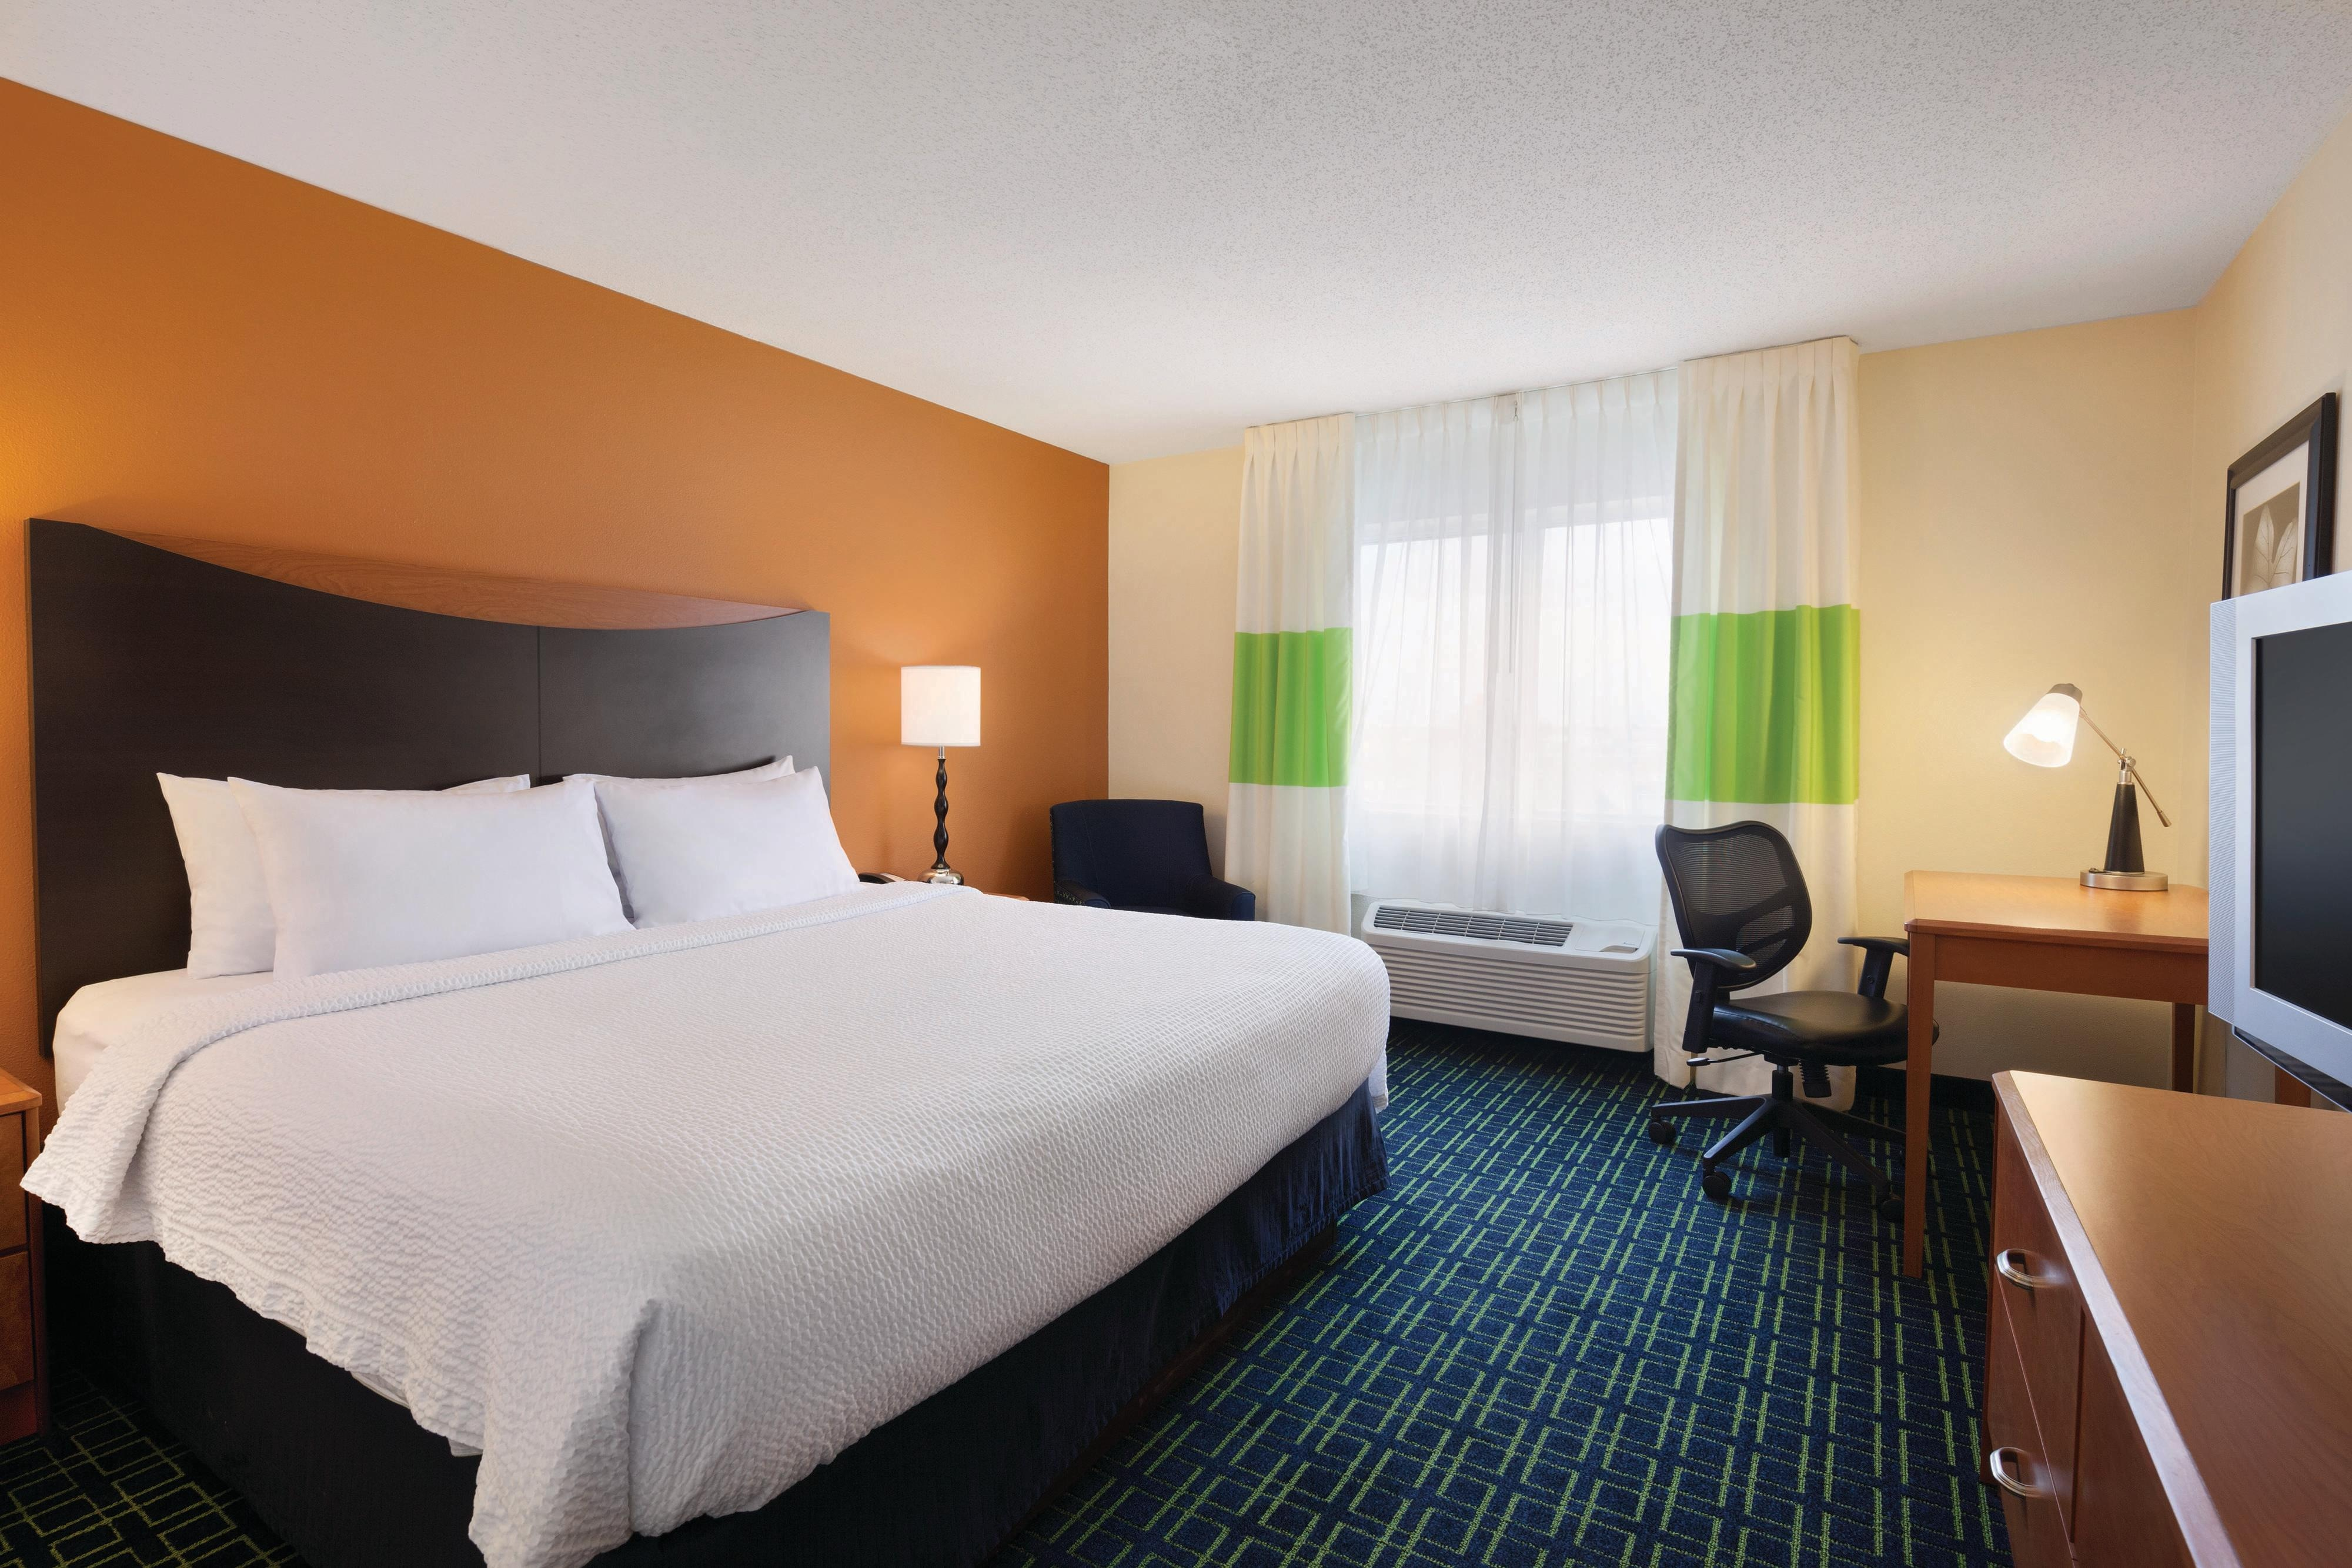 Available Hotel Rooms In Fargo Nd